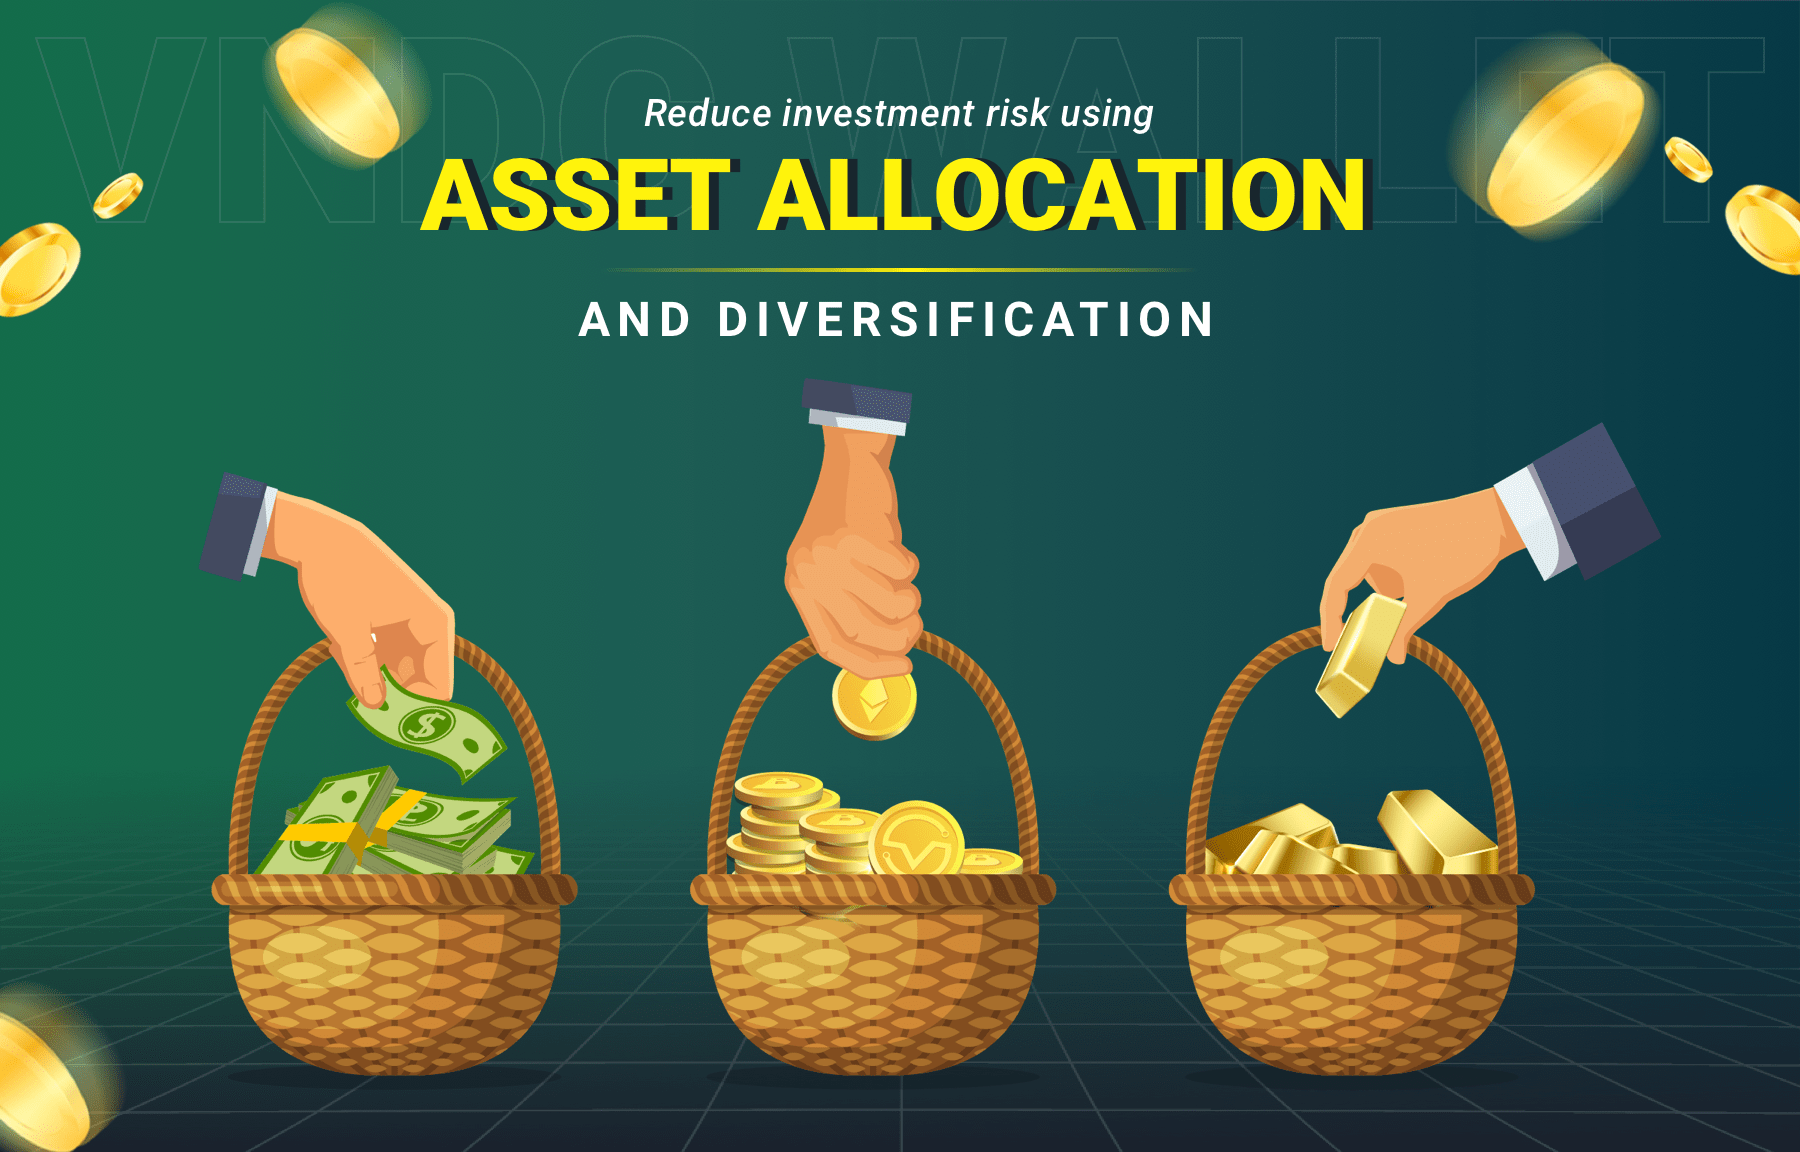 Reduce investment risk using asset allocation and diversification